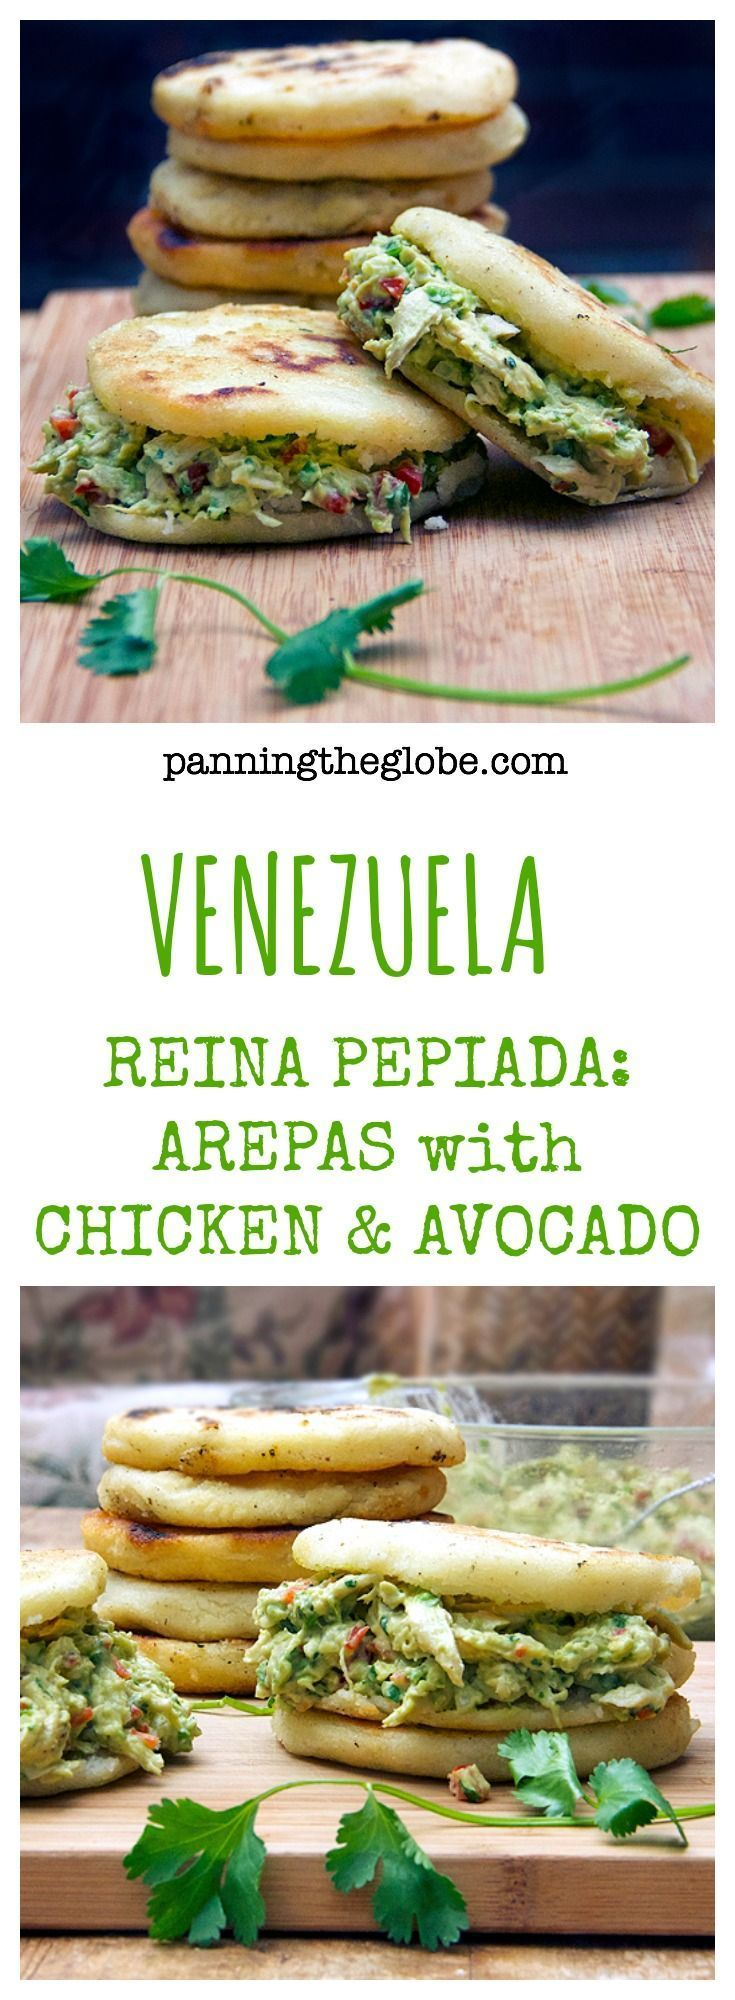 Arepas with Chicken and Avocado: Venezuelan corn meal cakes filled with delicious chicken and avocado salad.